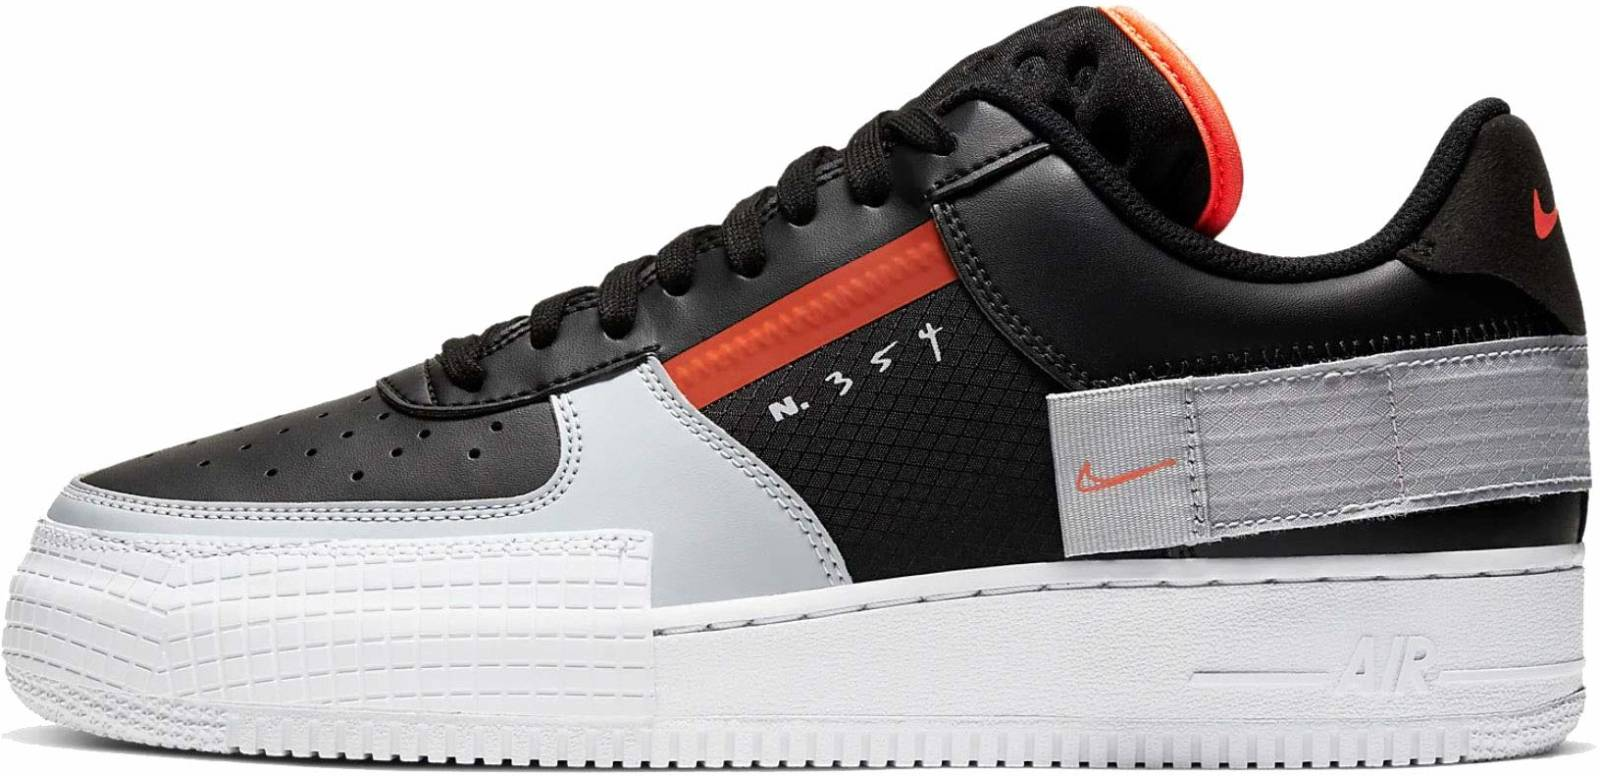 11 Reasons to/NOT to Buy Nike Air Force 1 Type (Sep 2021) | RunRepeat